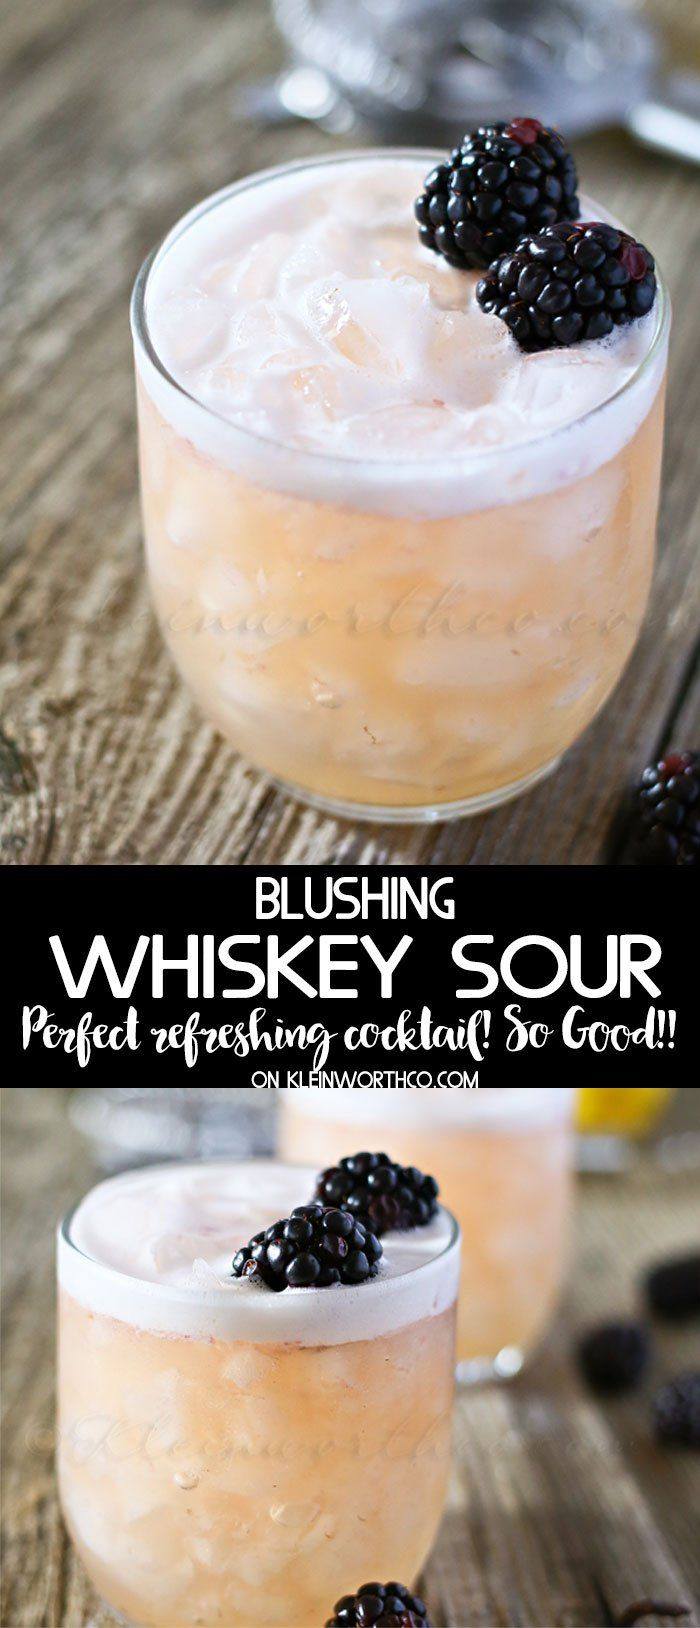 Blushing Whiskey Sour - Kleinworth & Co